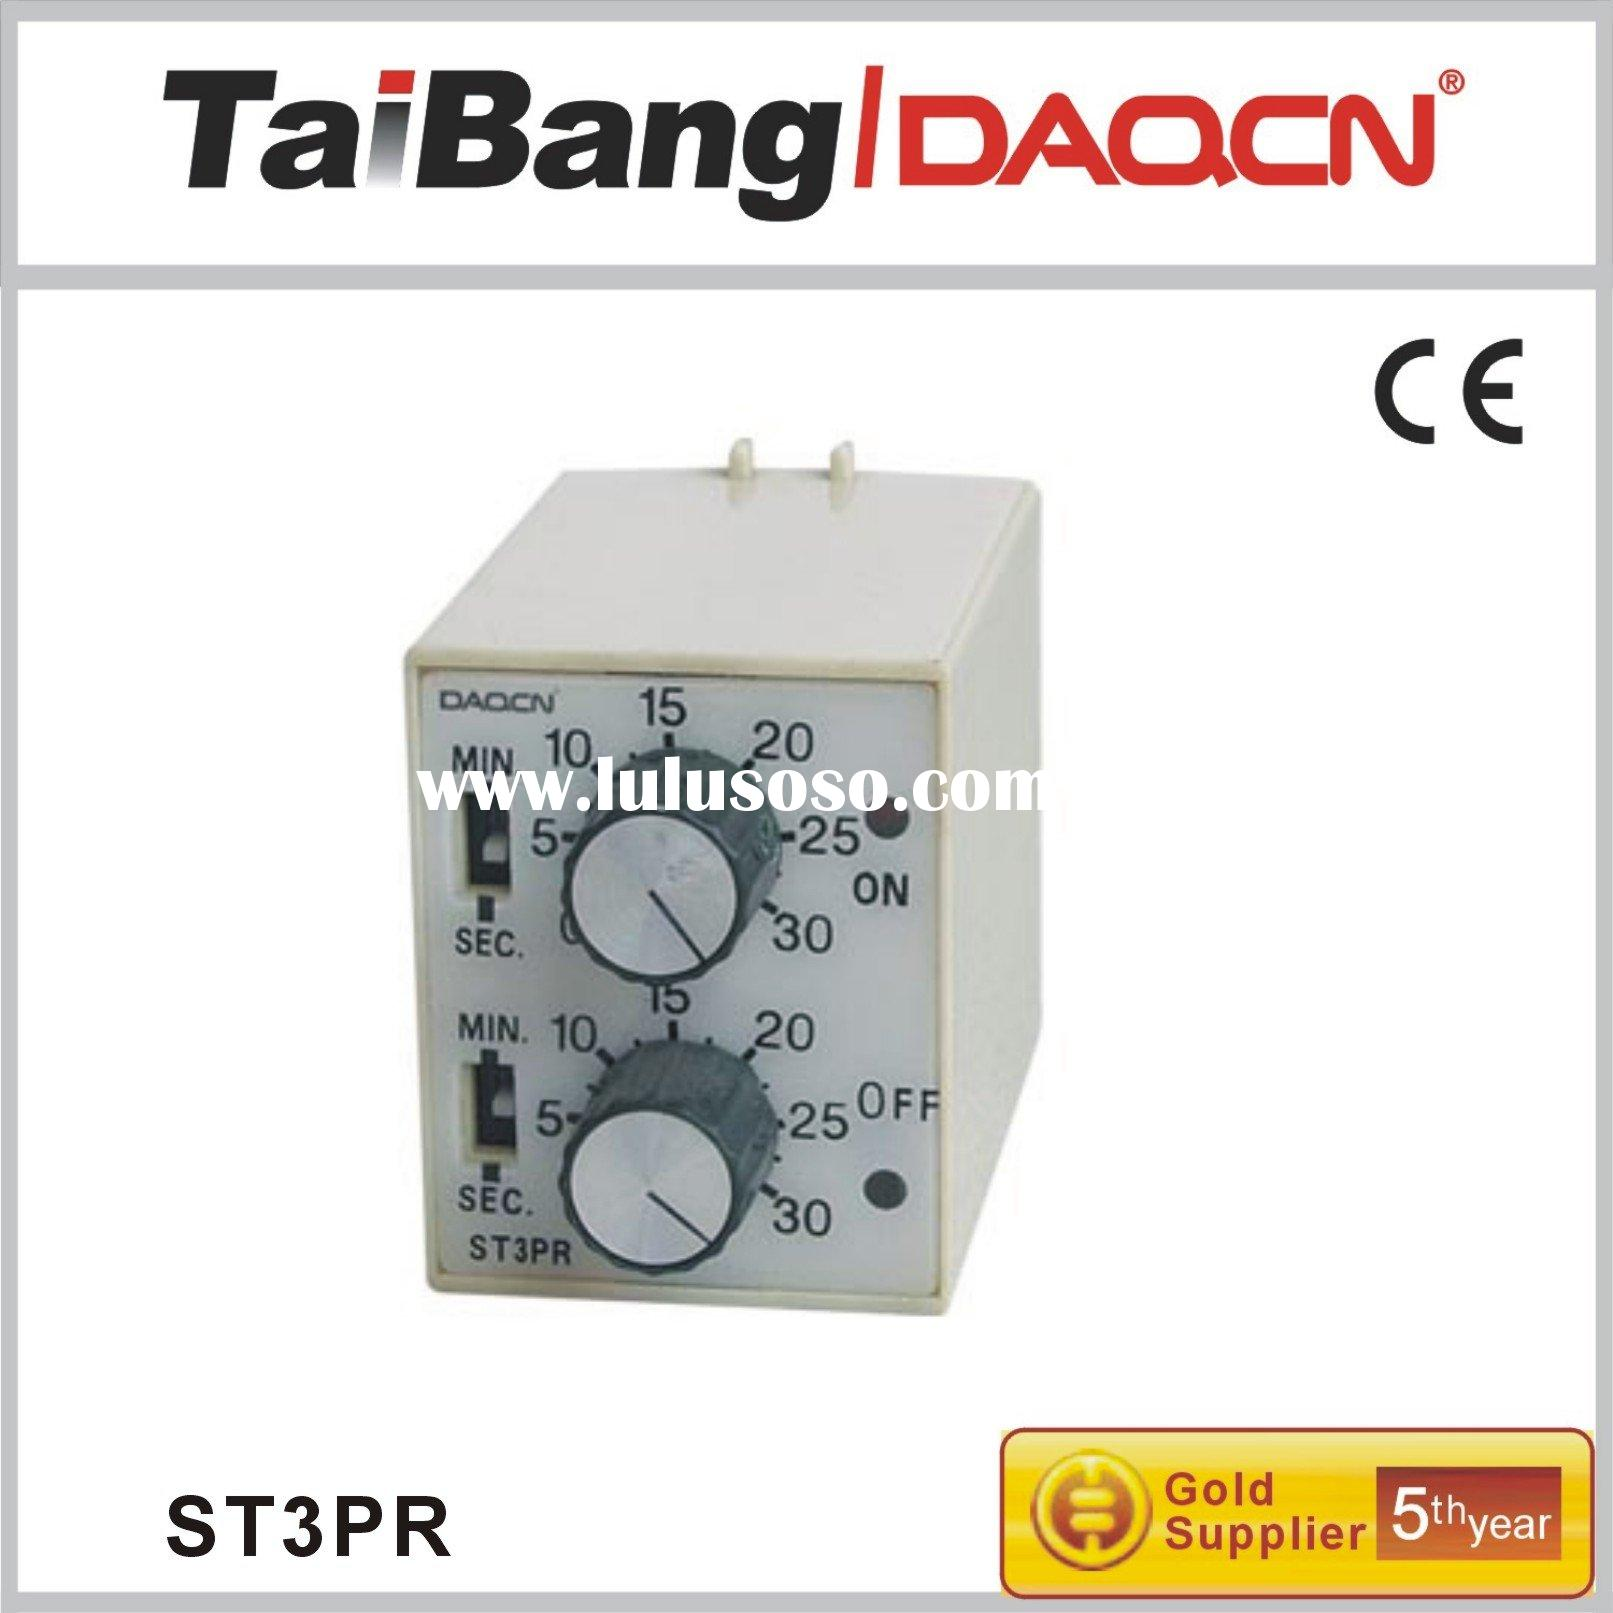 Defiant Digital Timer Wiring Diagrams Diagram Get Free Image About For On Live Well Model 457864